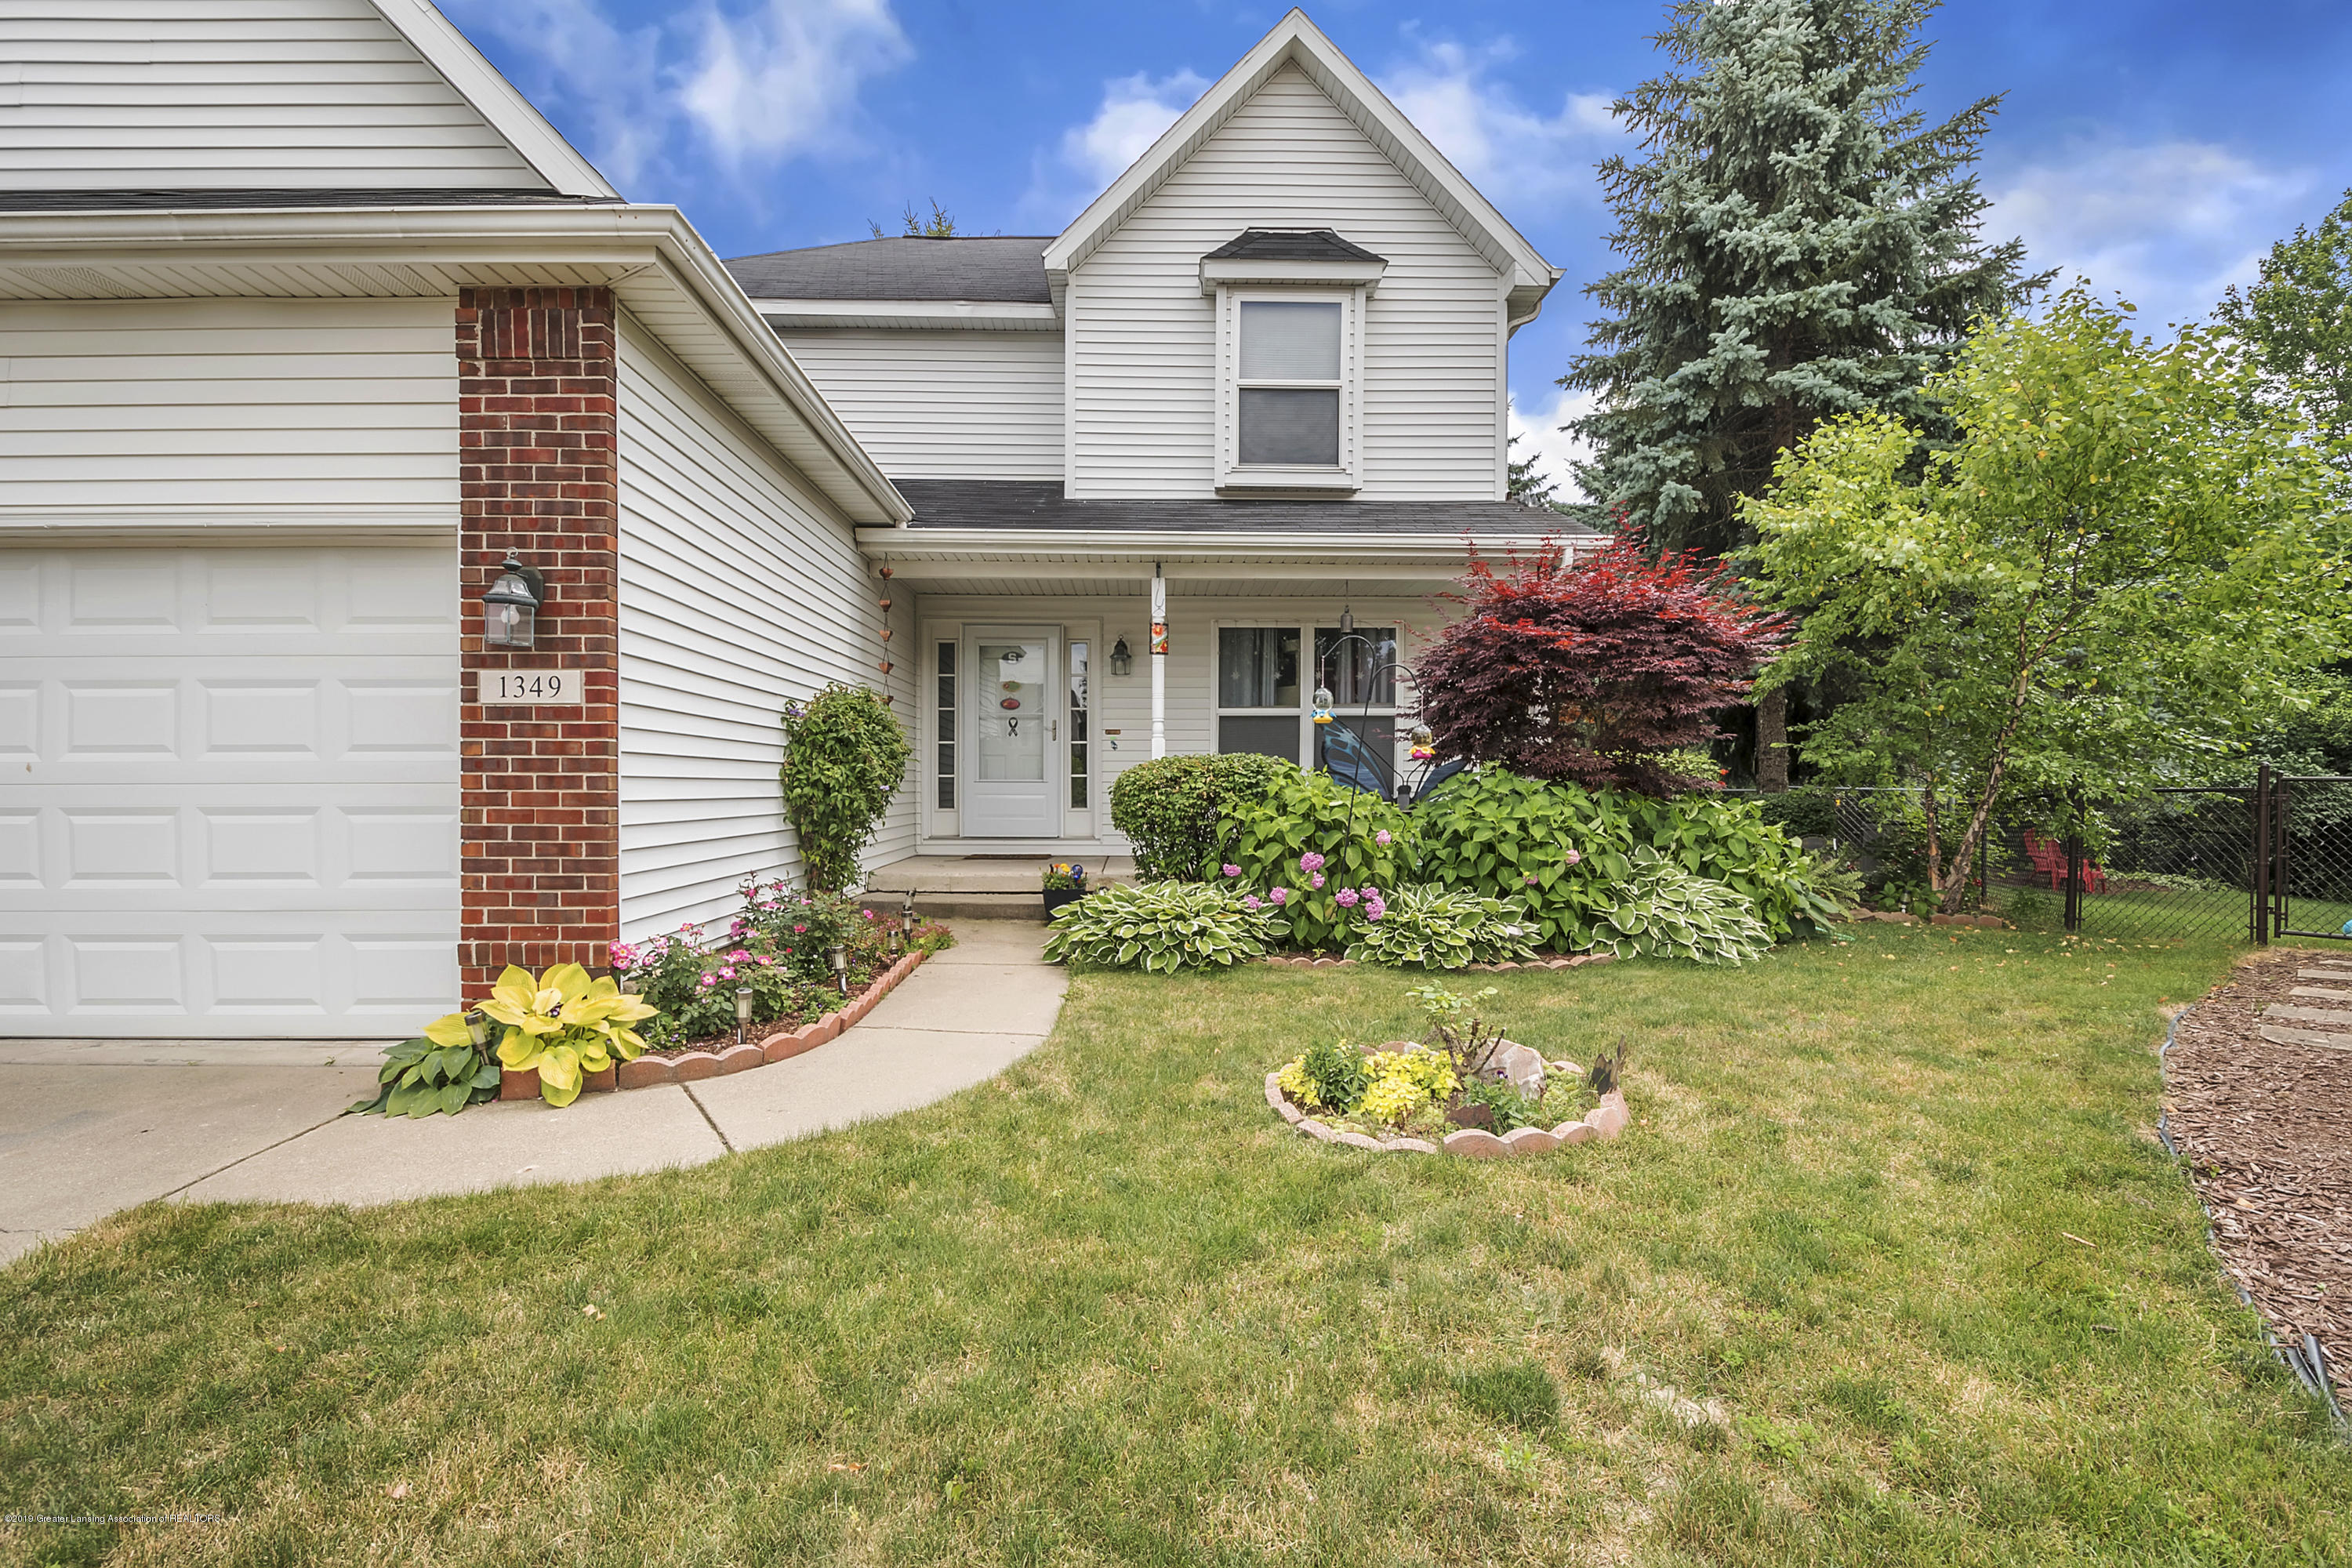 1349 Turtlecreek Cir - 1349-Turtlecreek-Cir-East-Lansing-window - 4